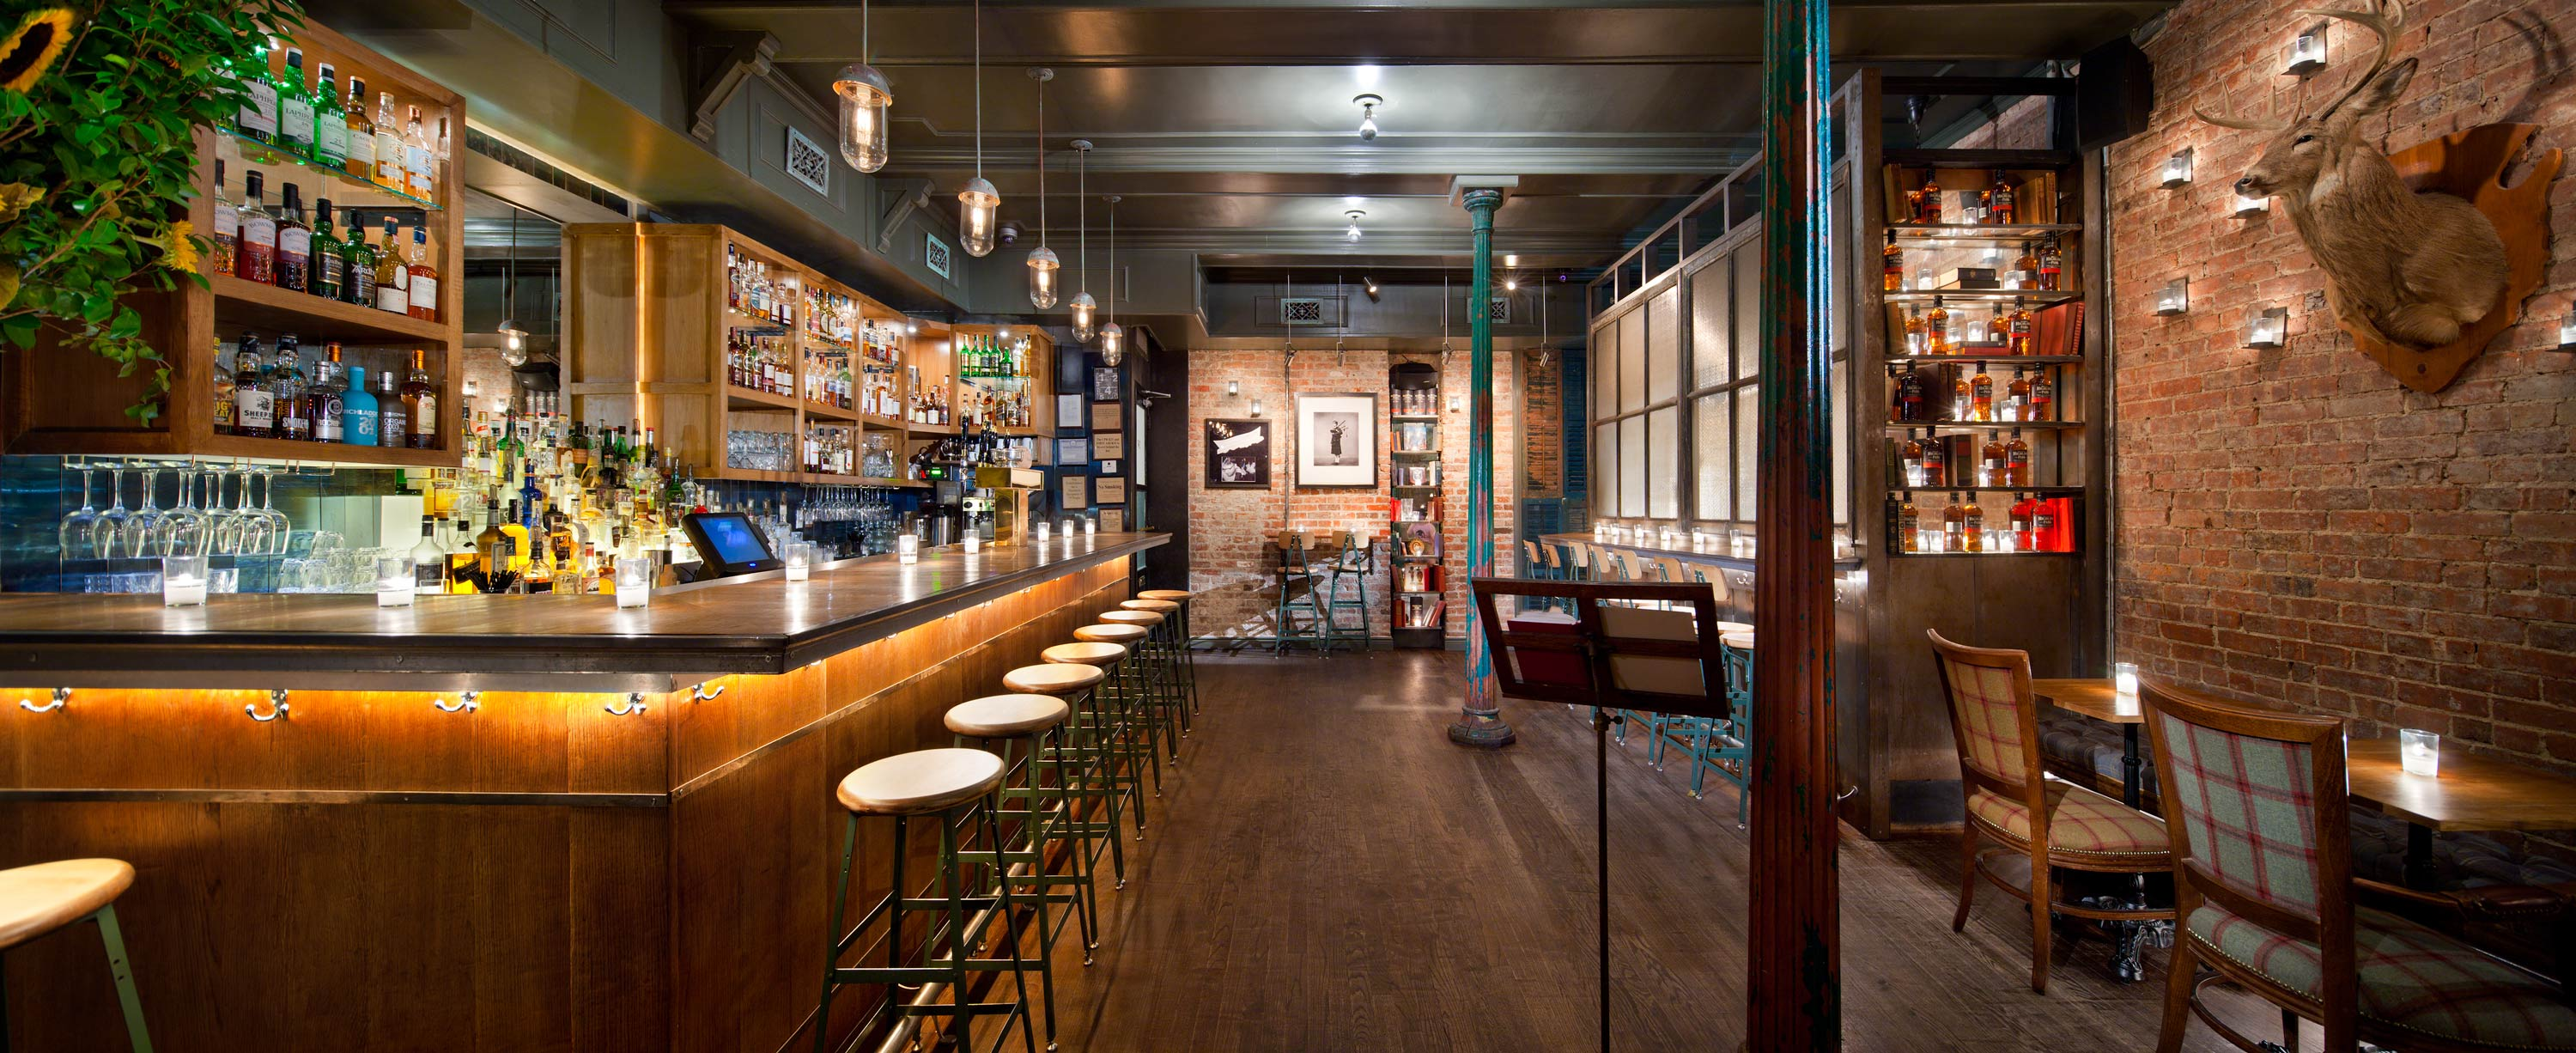 Highlands Bar in New York CIty